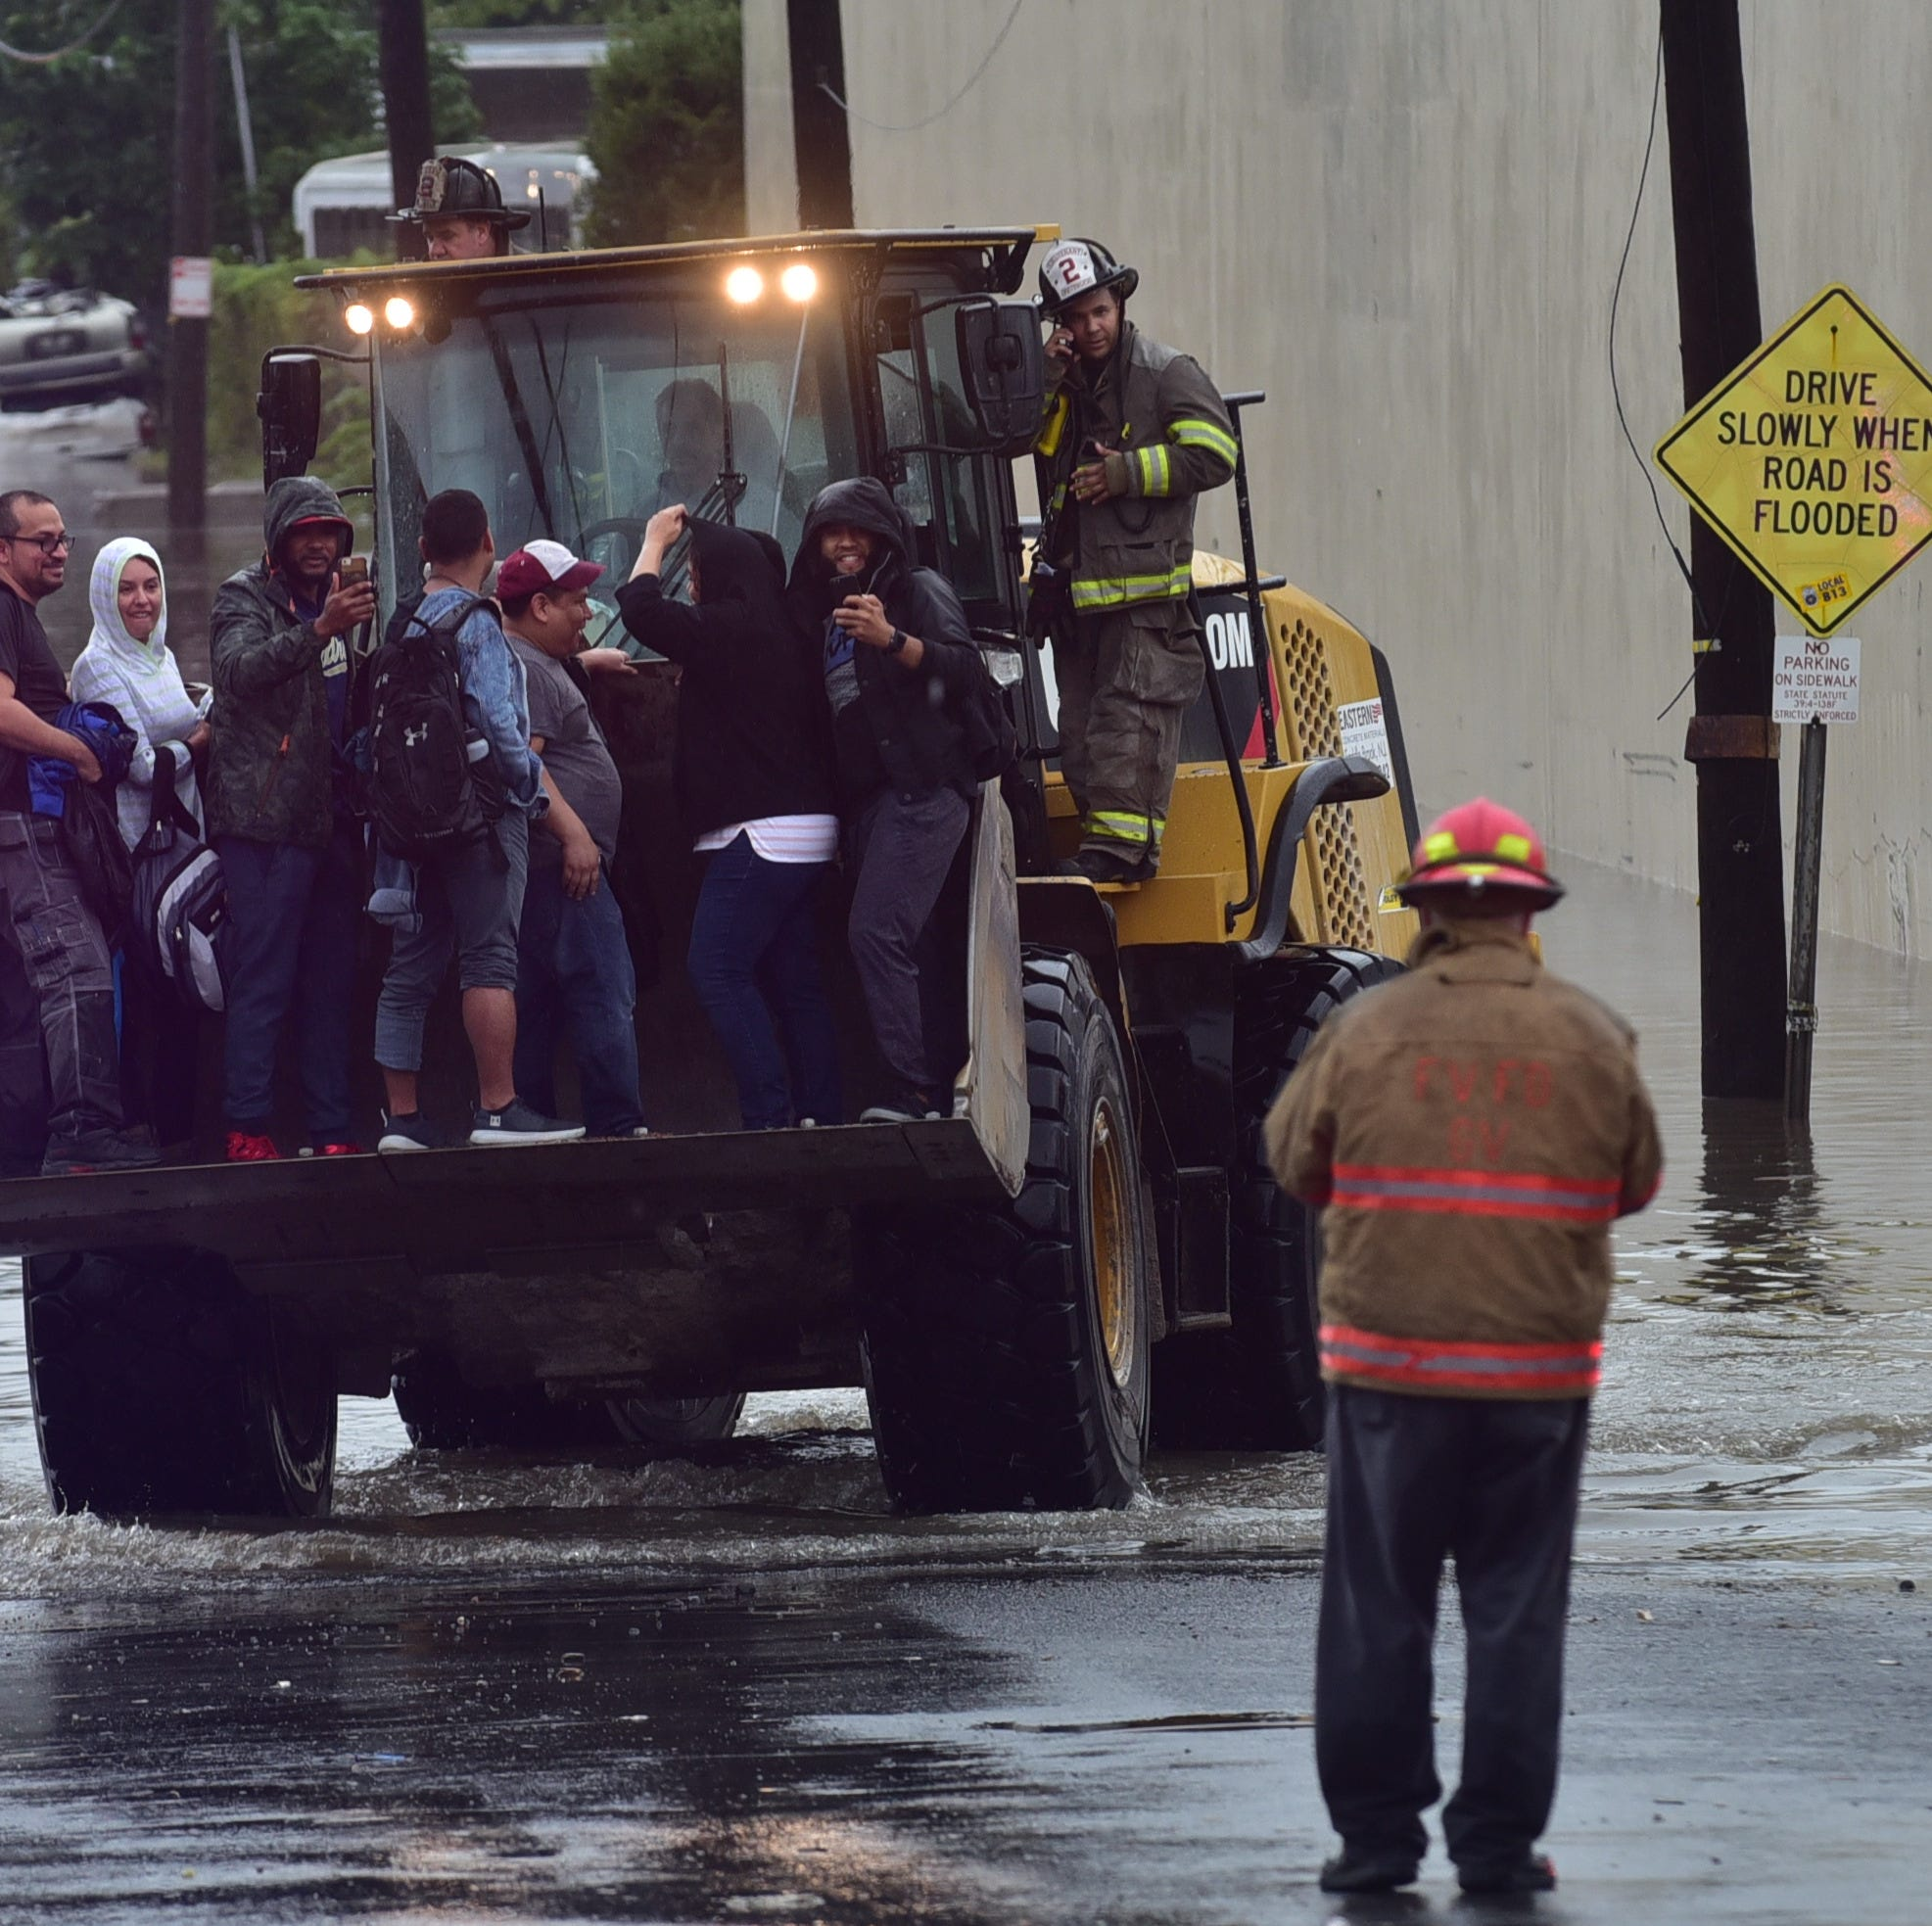 100 people rescued from flooded Fairview industrial building